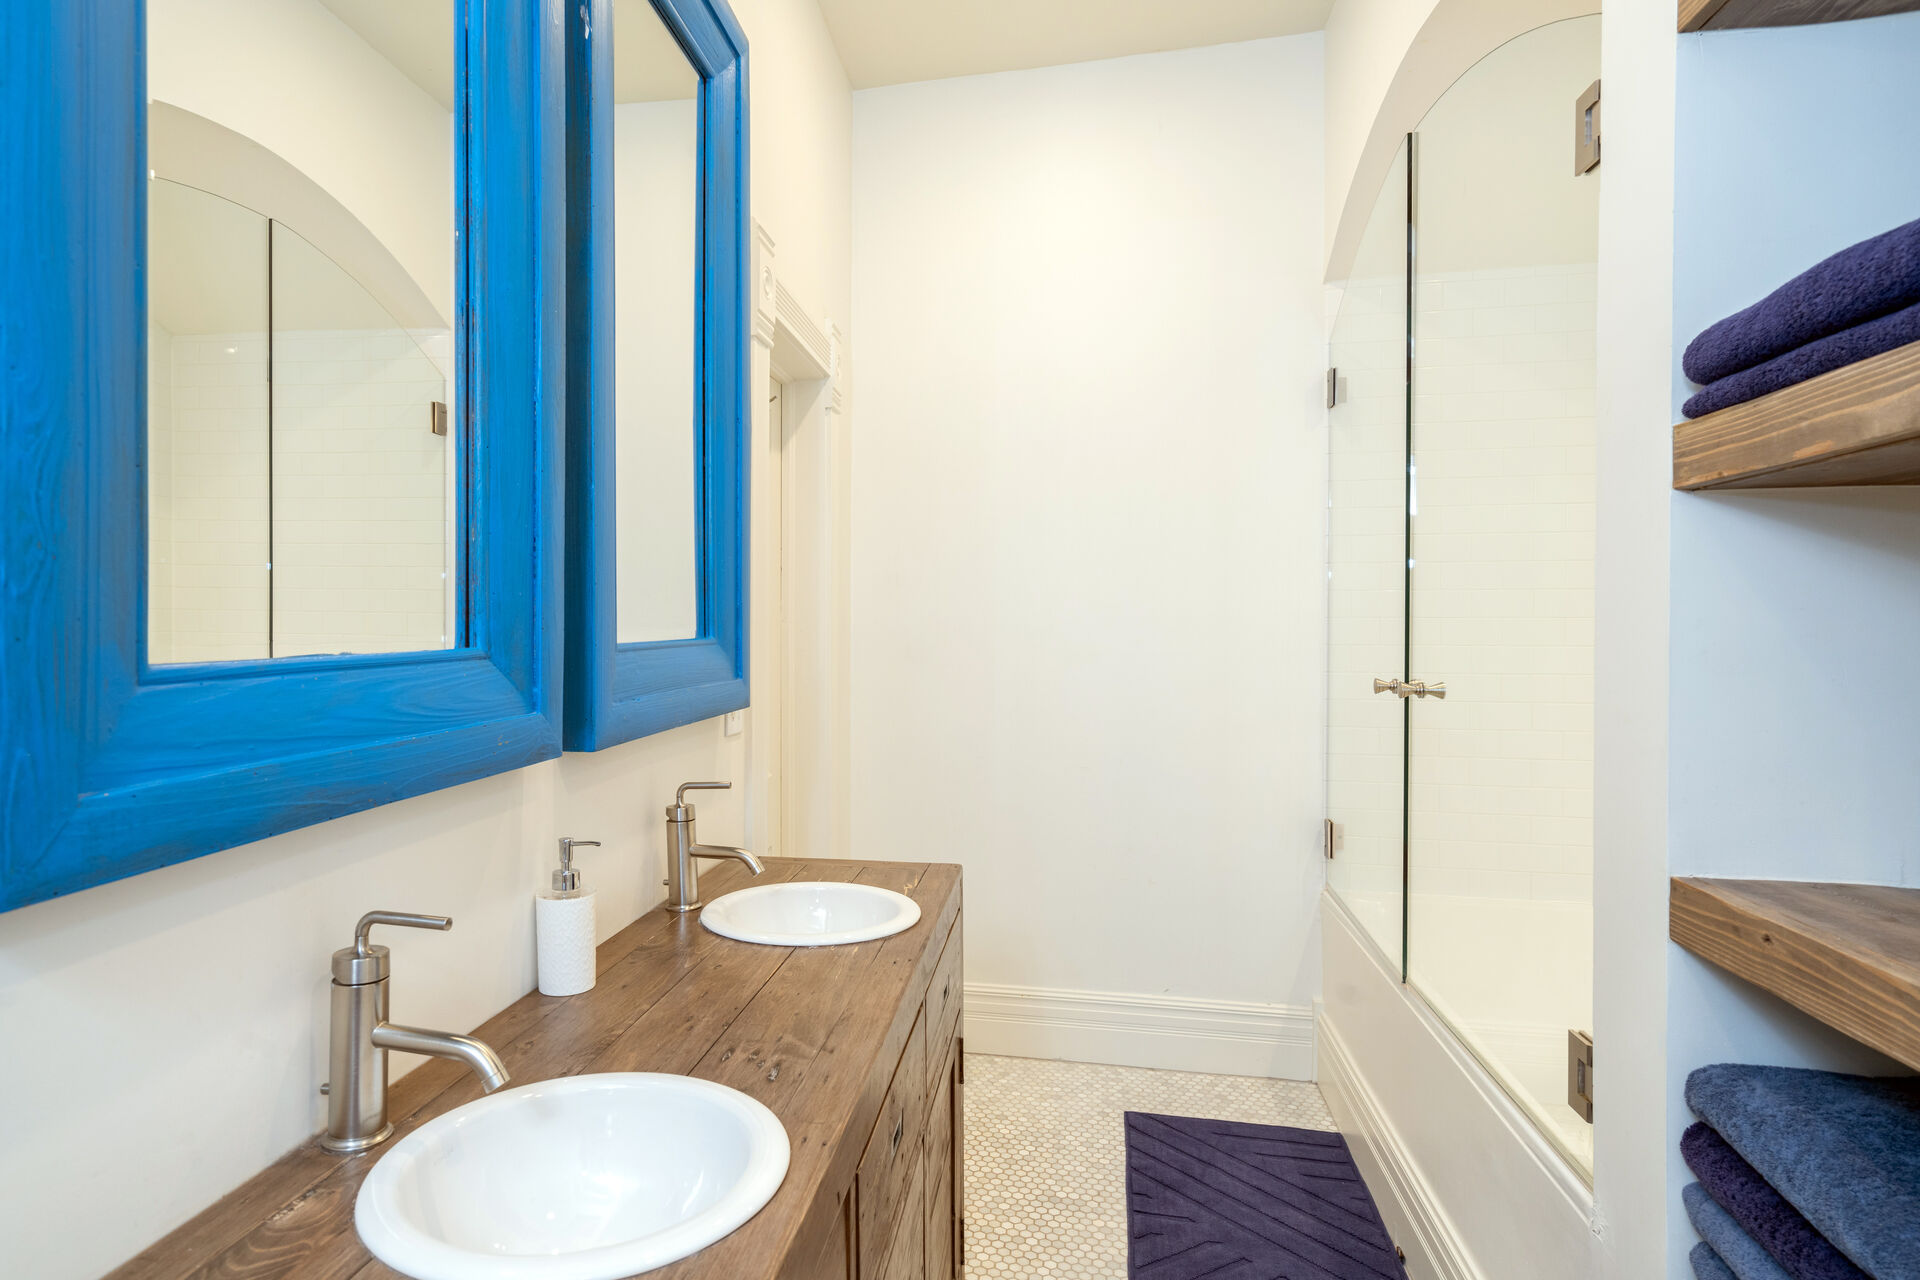 Blue framed mirrors above a pair of sinks in the bathroom.